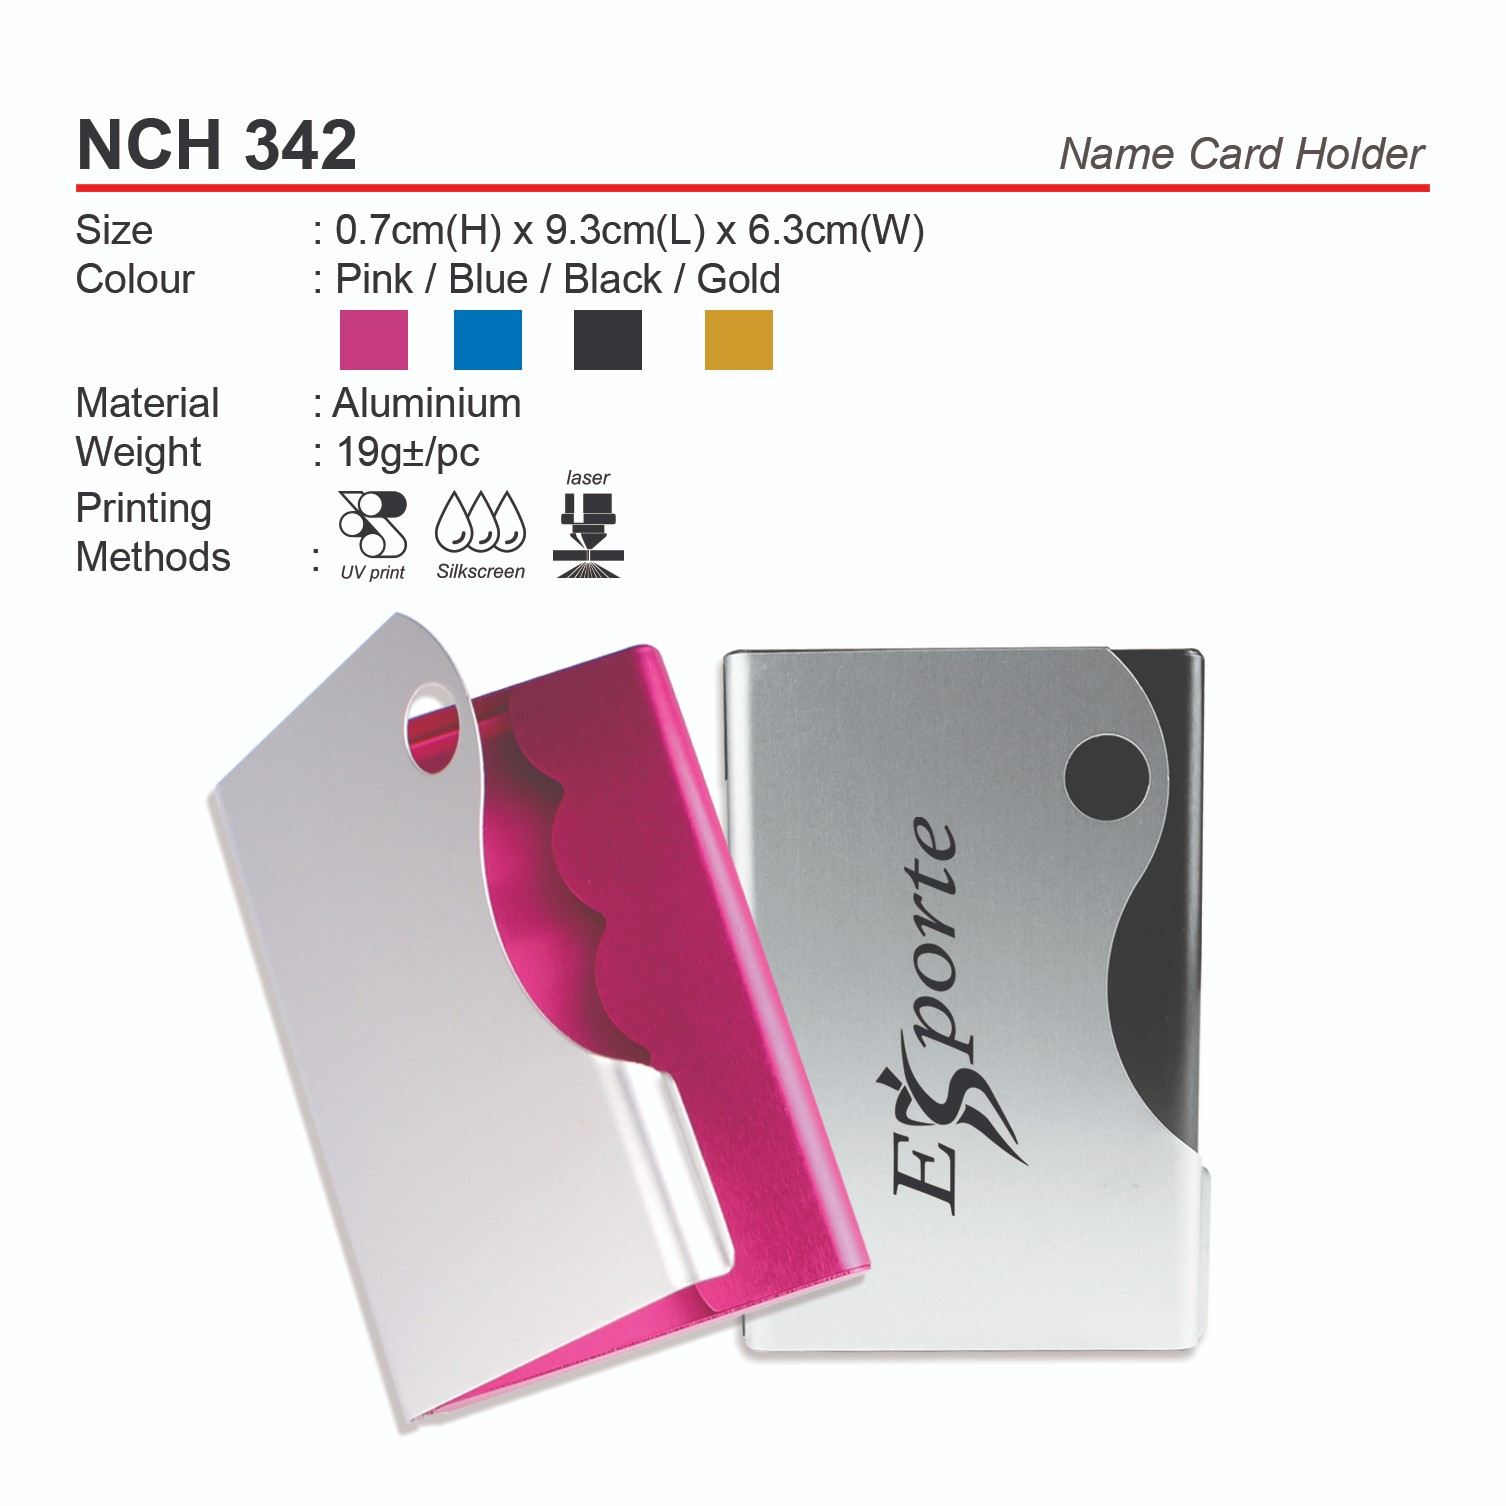 NCH342 Name Card Holder